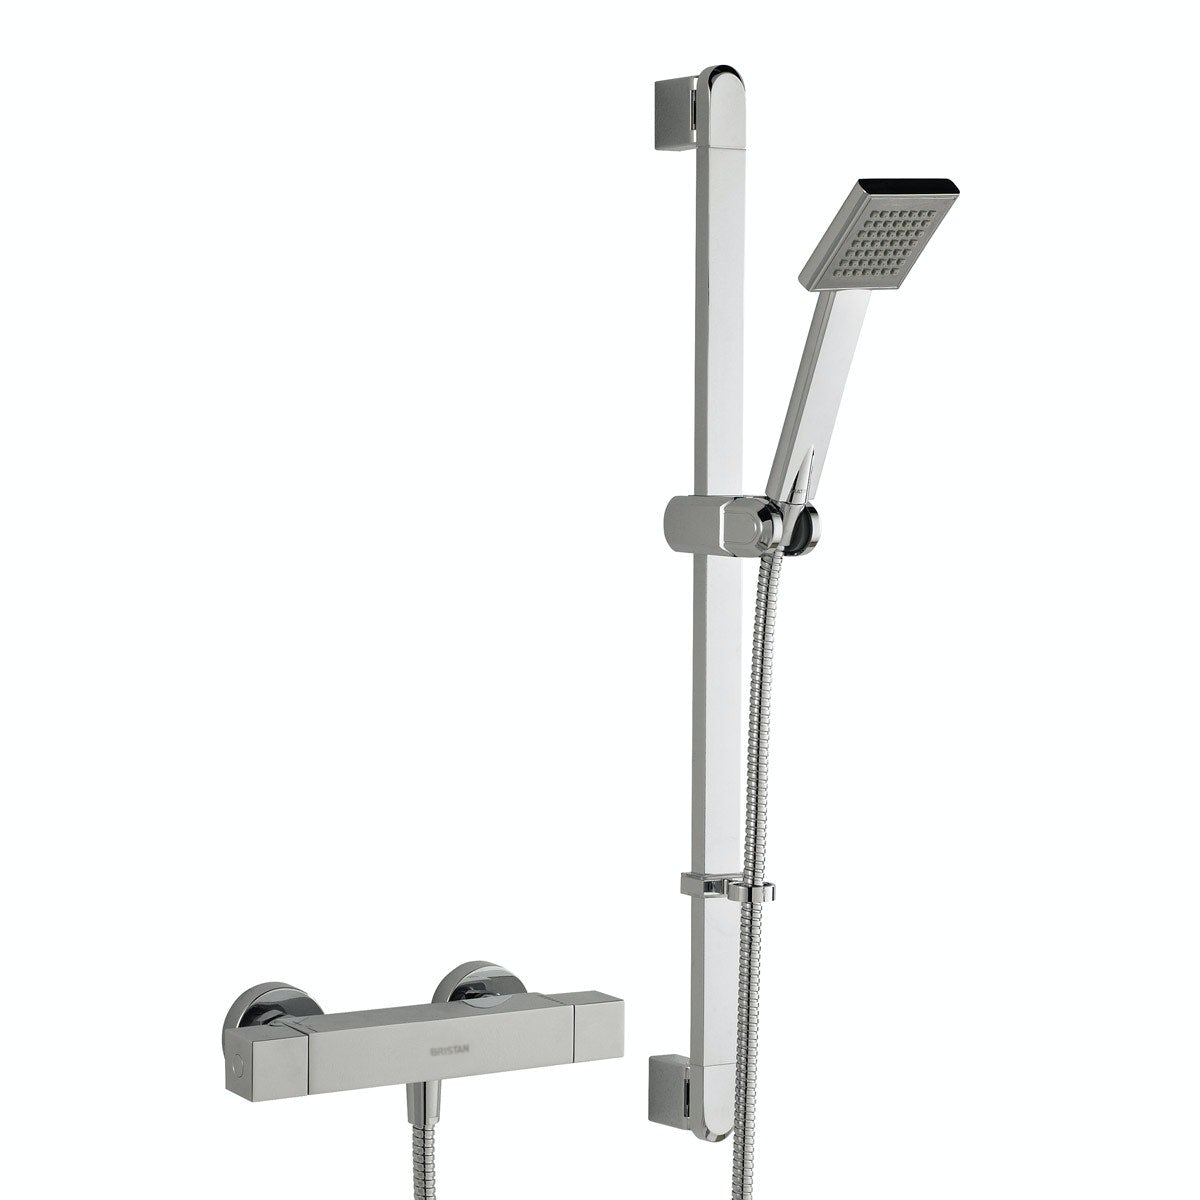 Bristan Quadrato thermostatic bar shower valve with slider rail kit